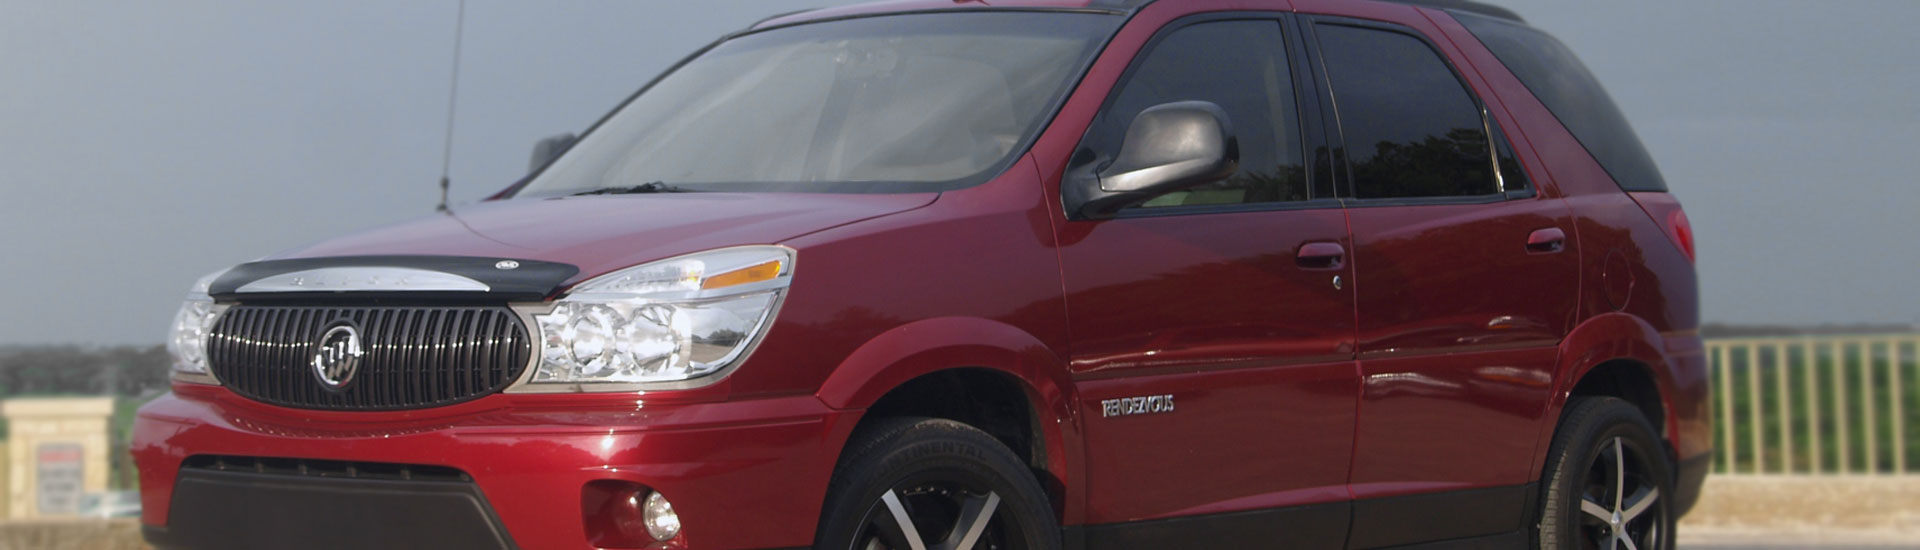 Buick Rendezvous Window Tint